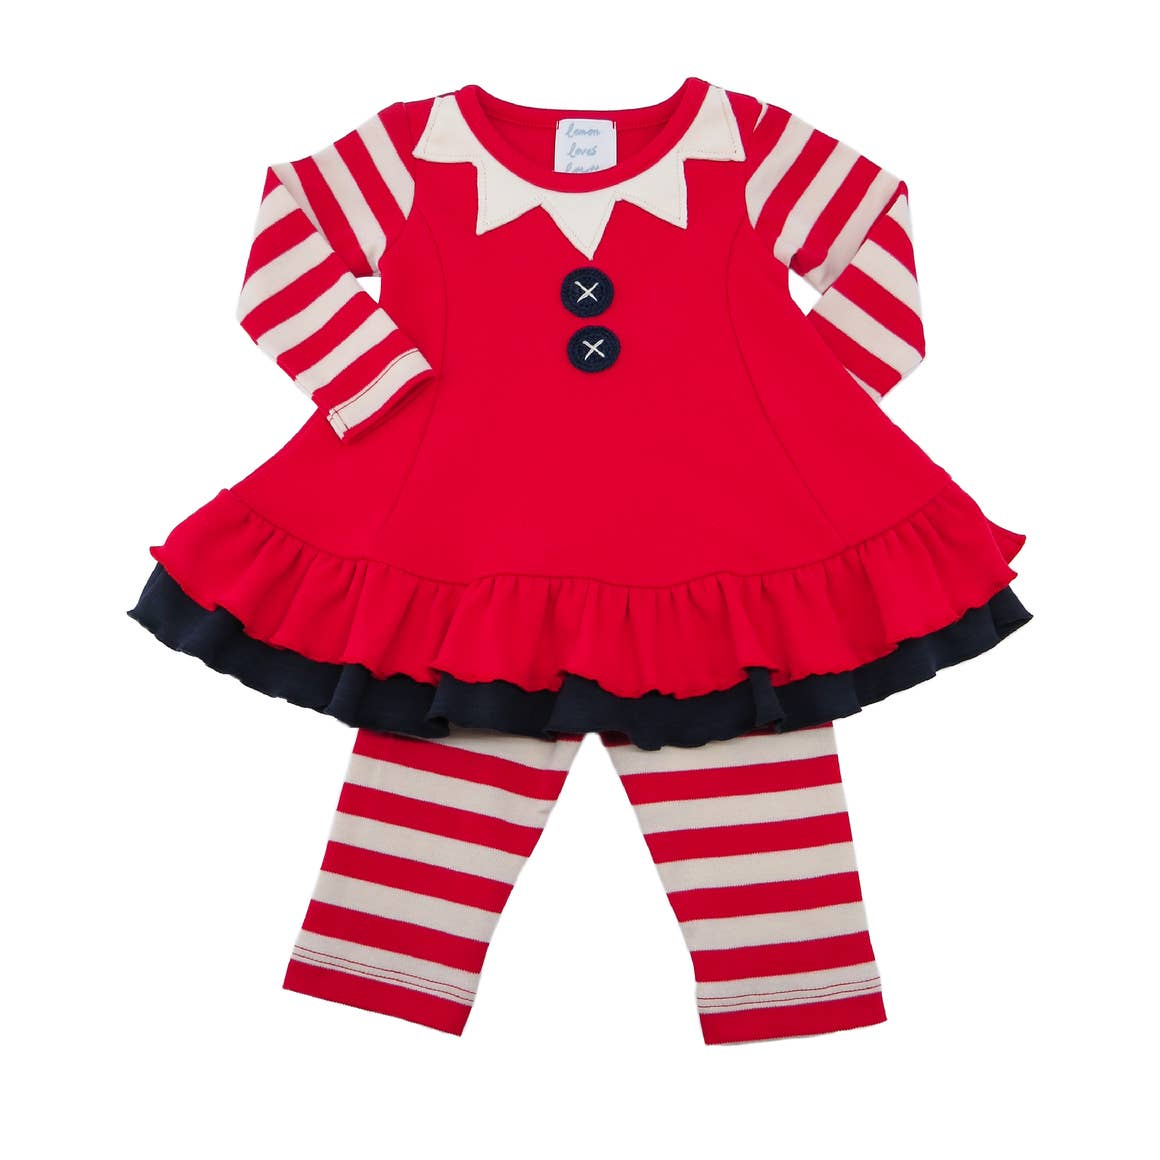 Miss Baby Elf Dress Set